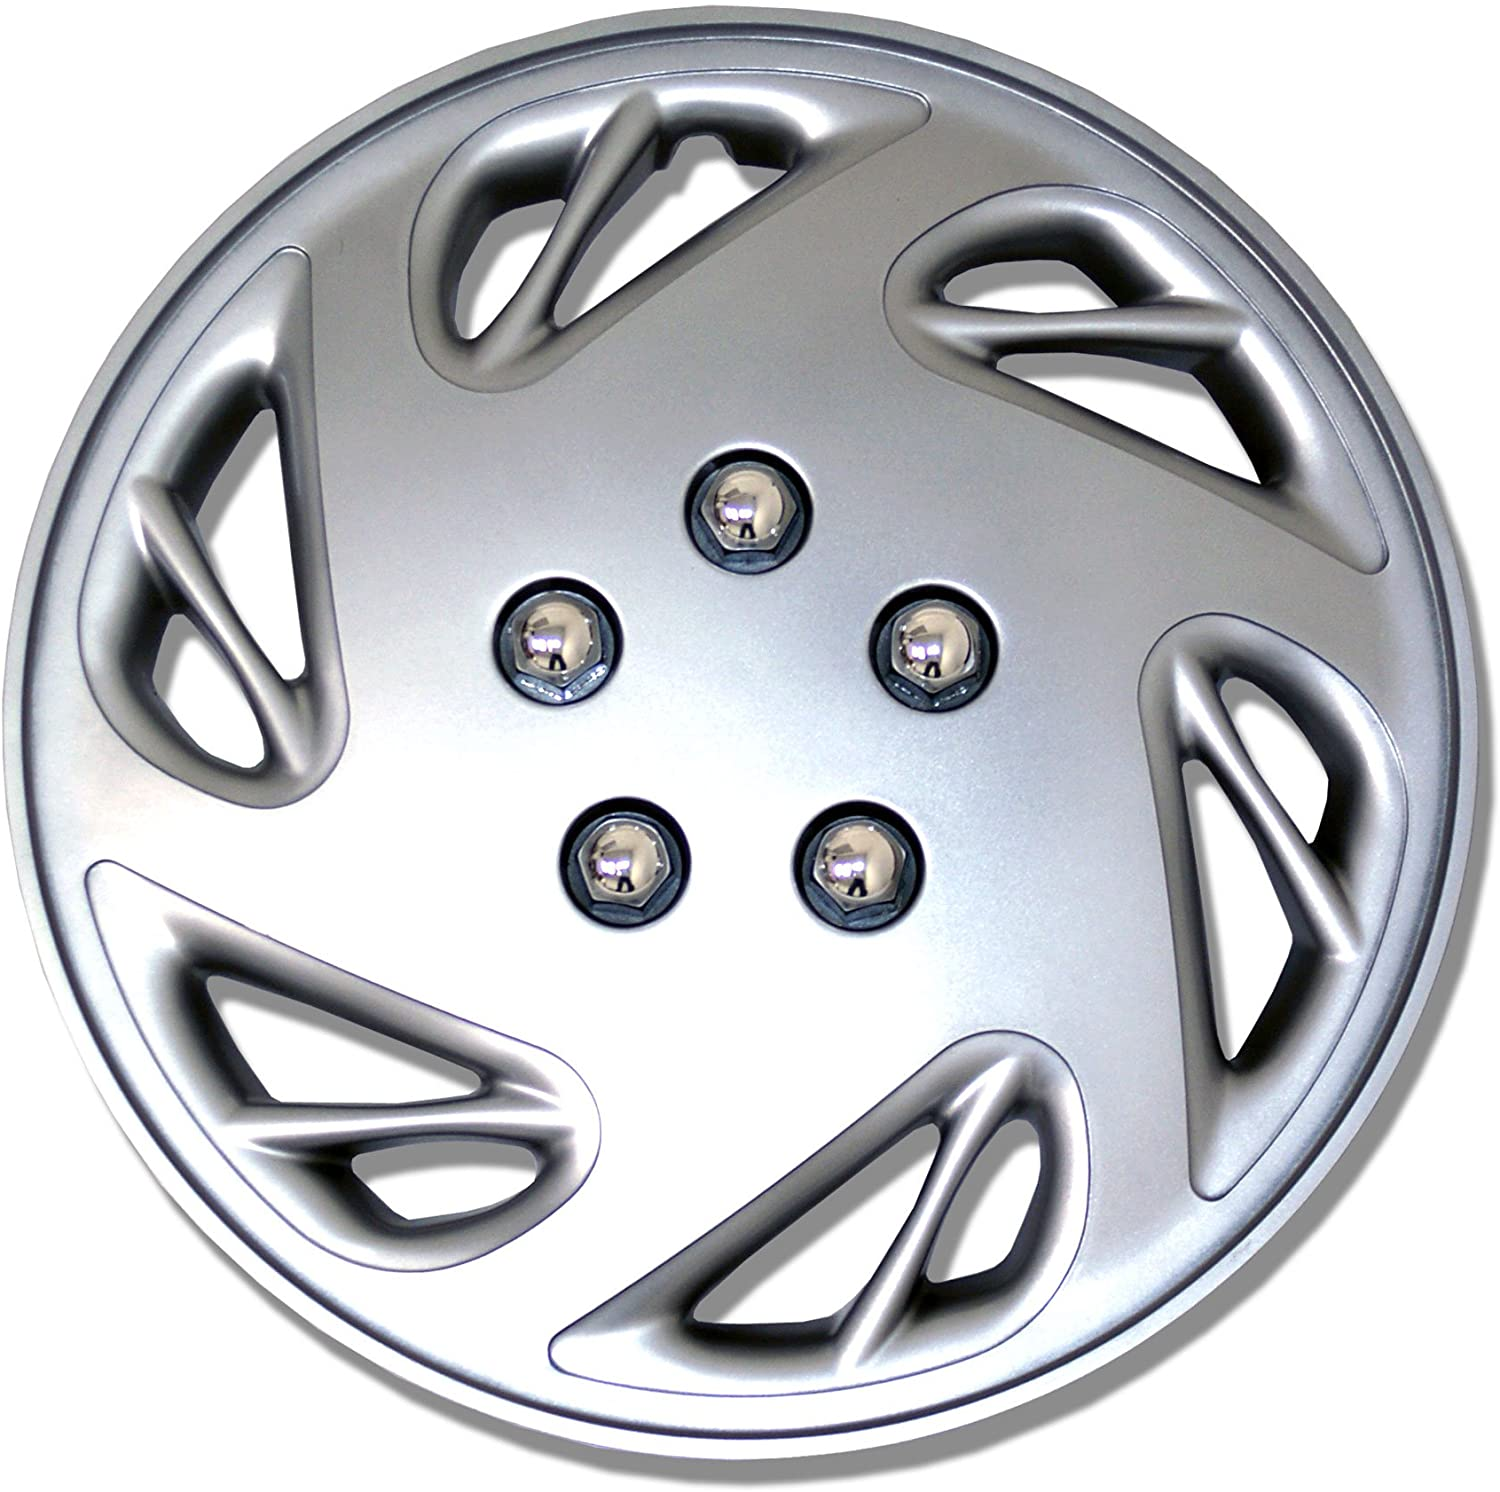 TuningPros WSC-054S17 Hubcaps Wheel Skin Cover 17-Inches Silver Set of 4